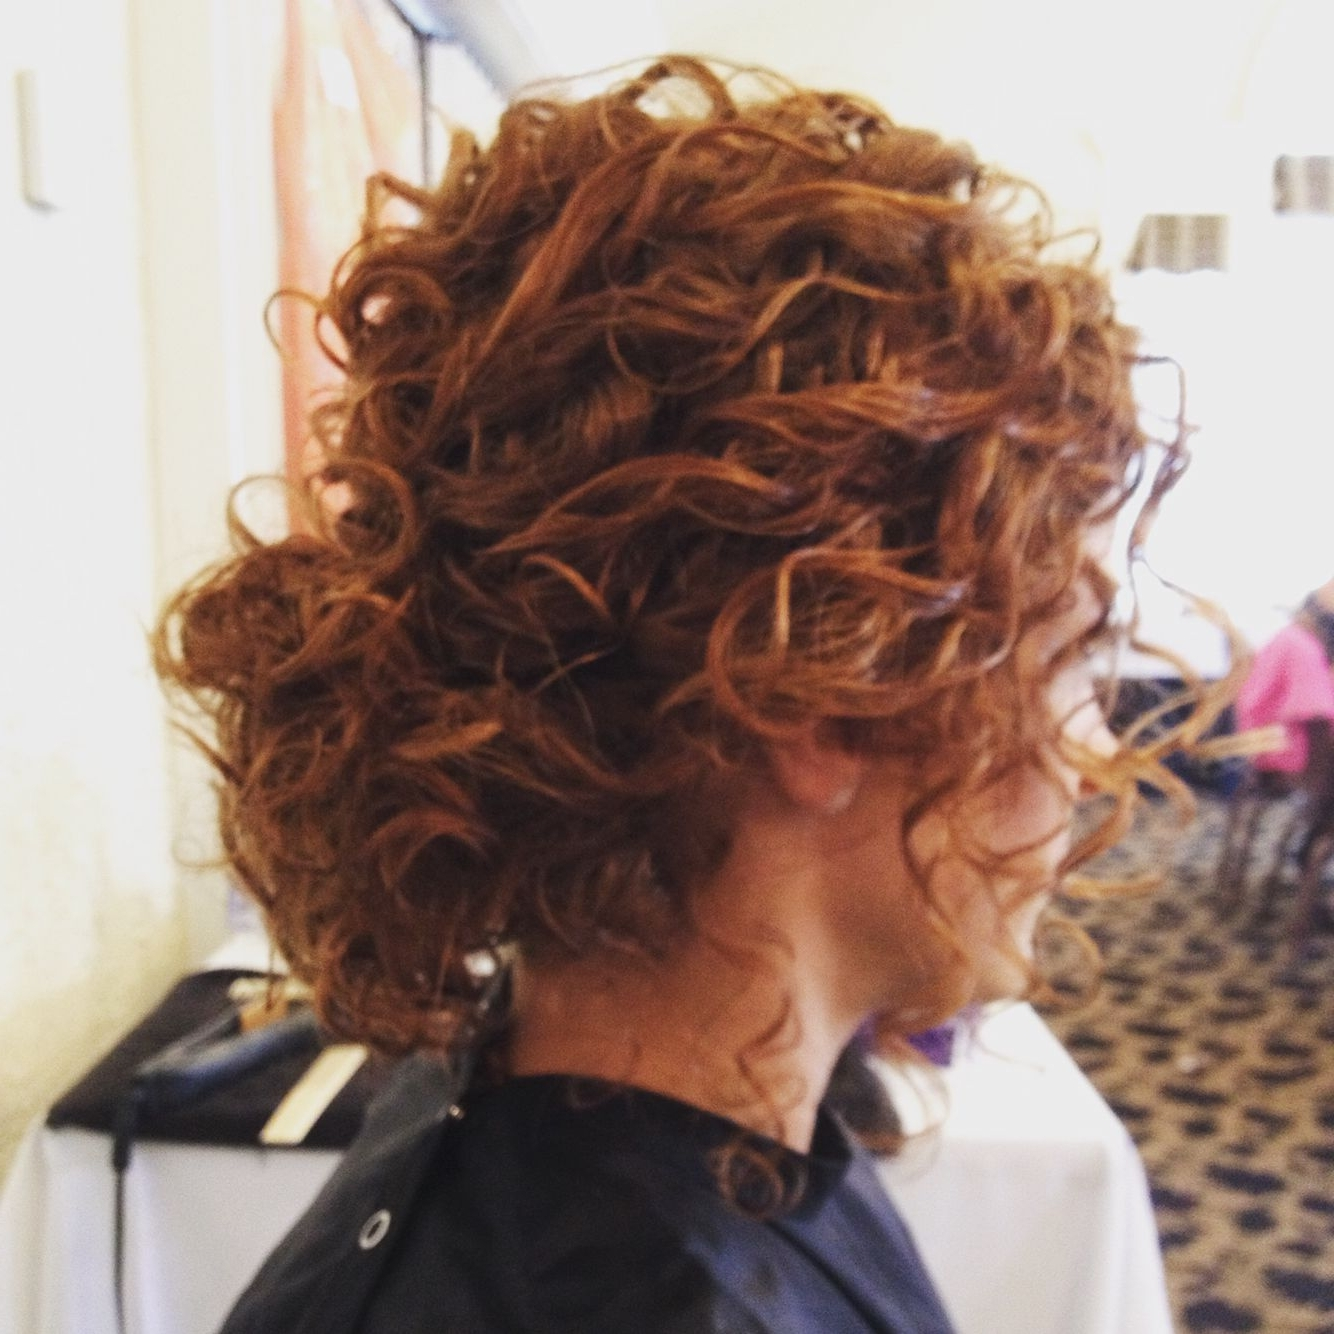 Naturally Curly Hair Low Bun Updo | Hair | Pinterest | Low Bun Updo Inside Natural Curly Hair Updos (View 3 of 15)